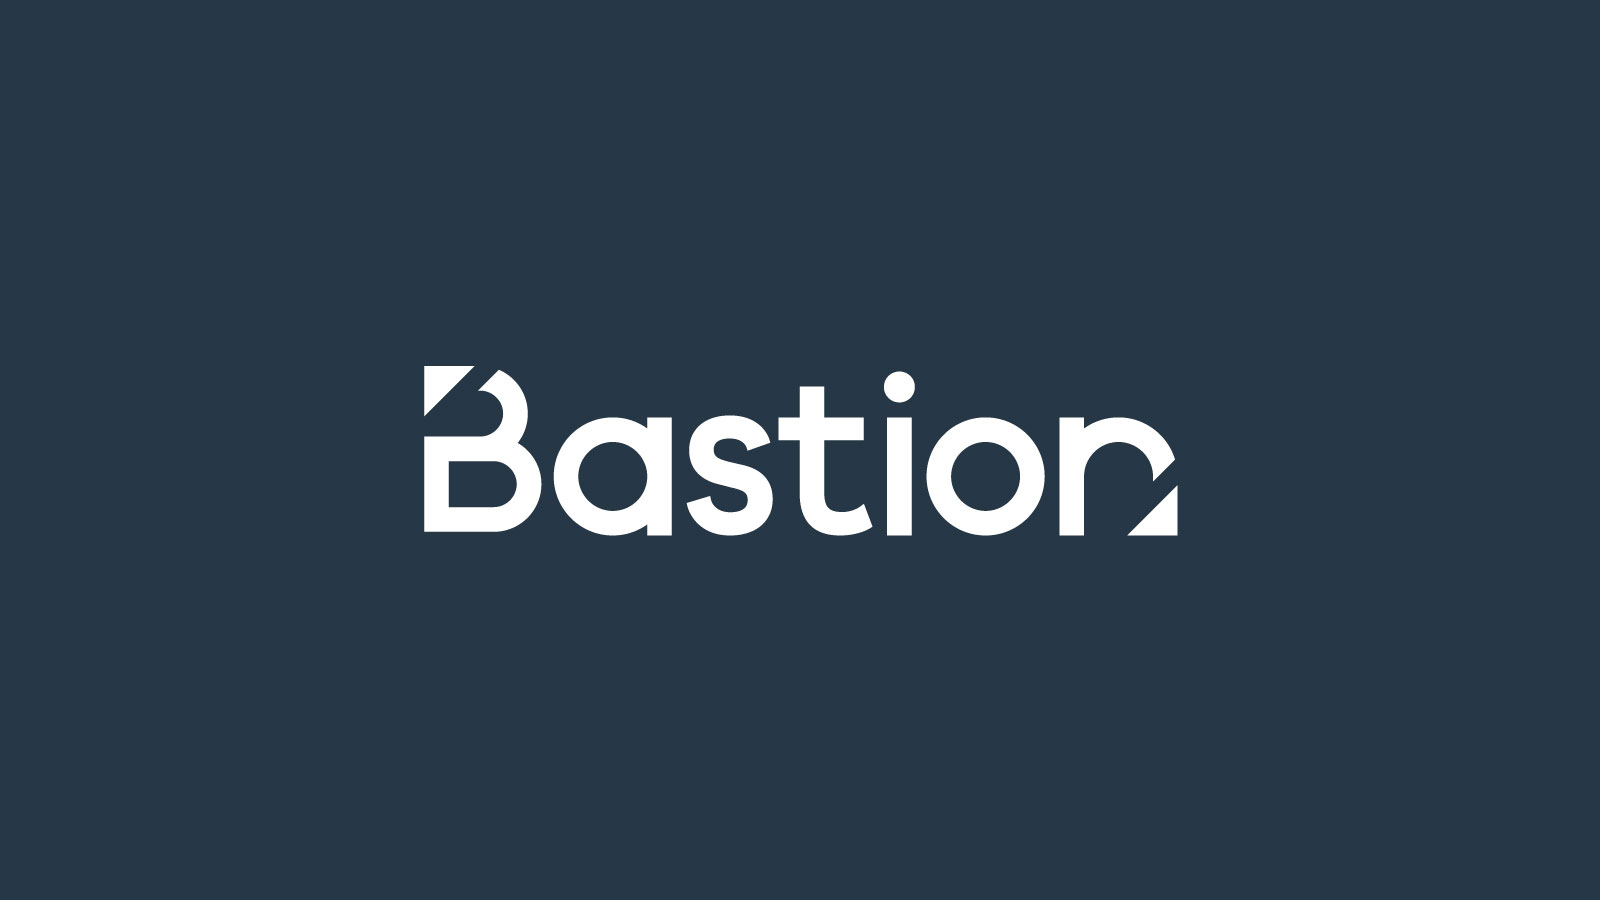 Bastion Architects brand logo design.